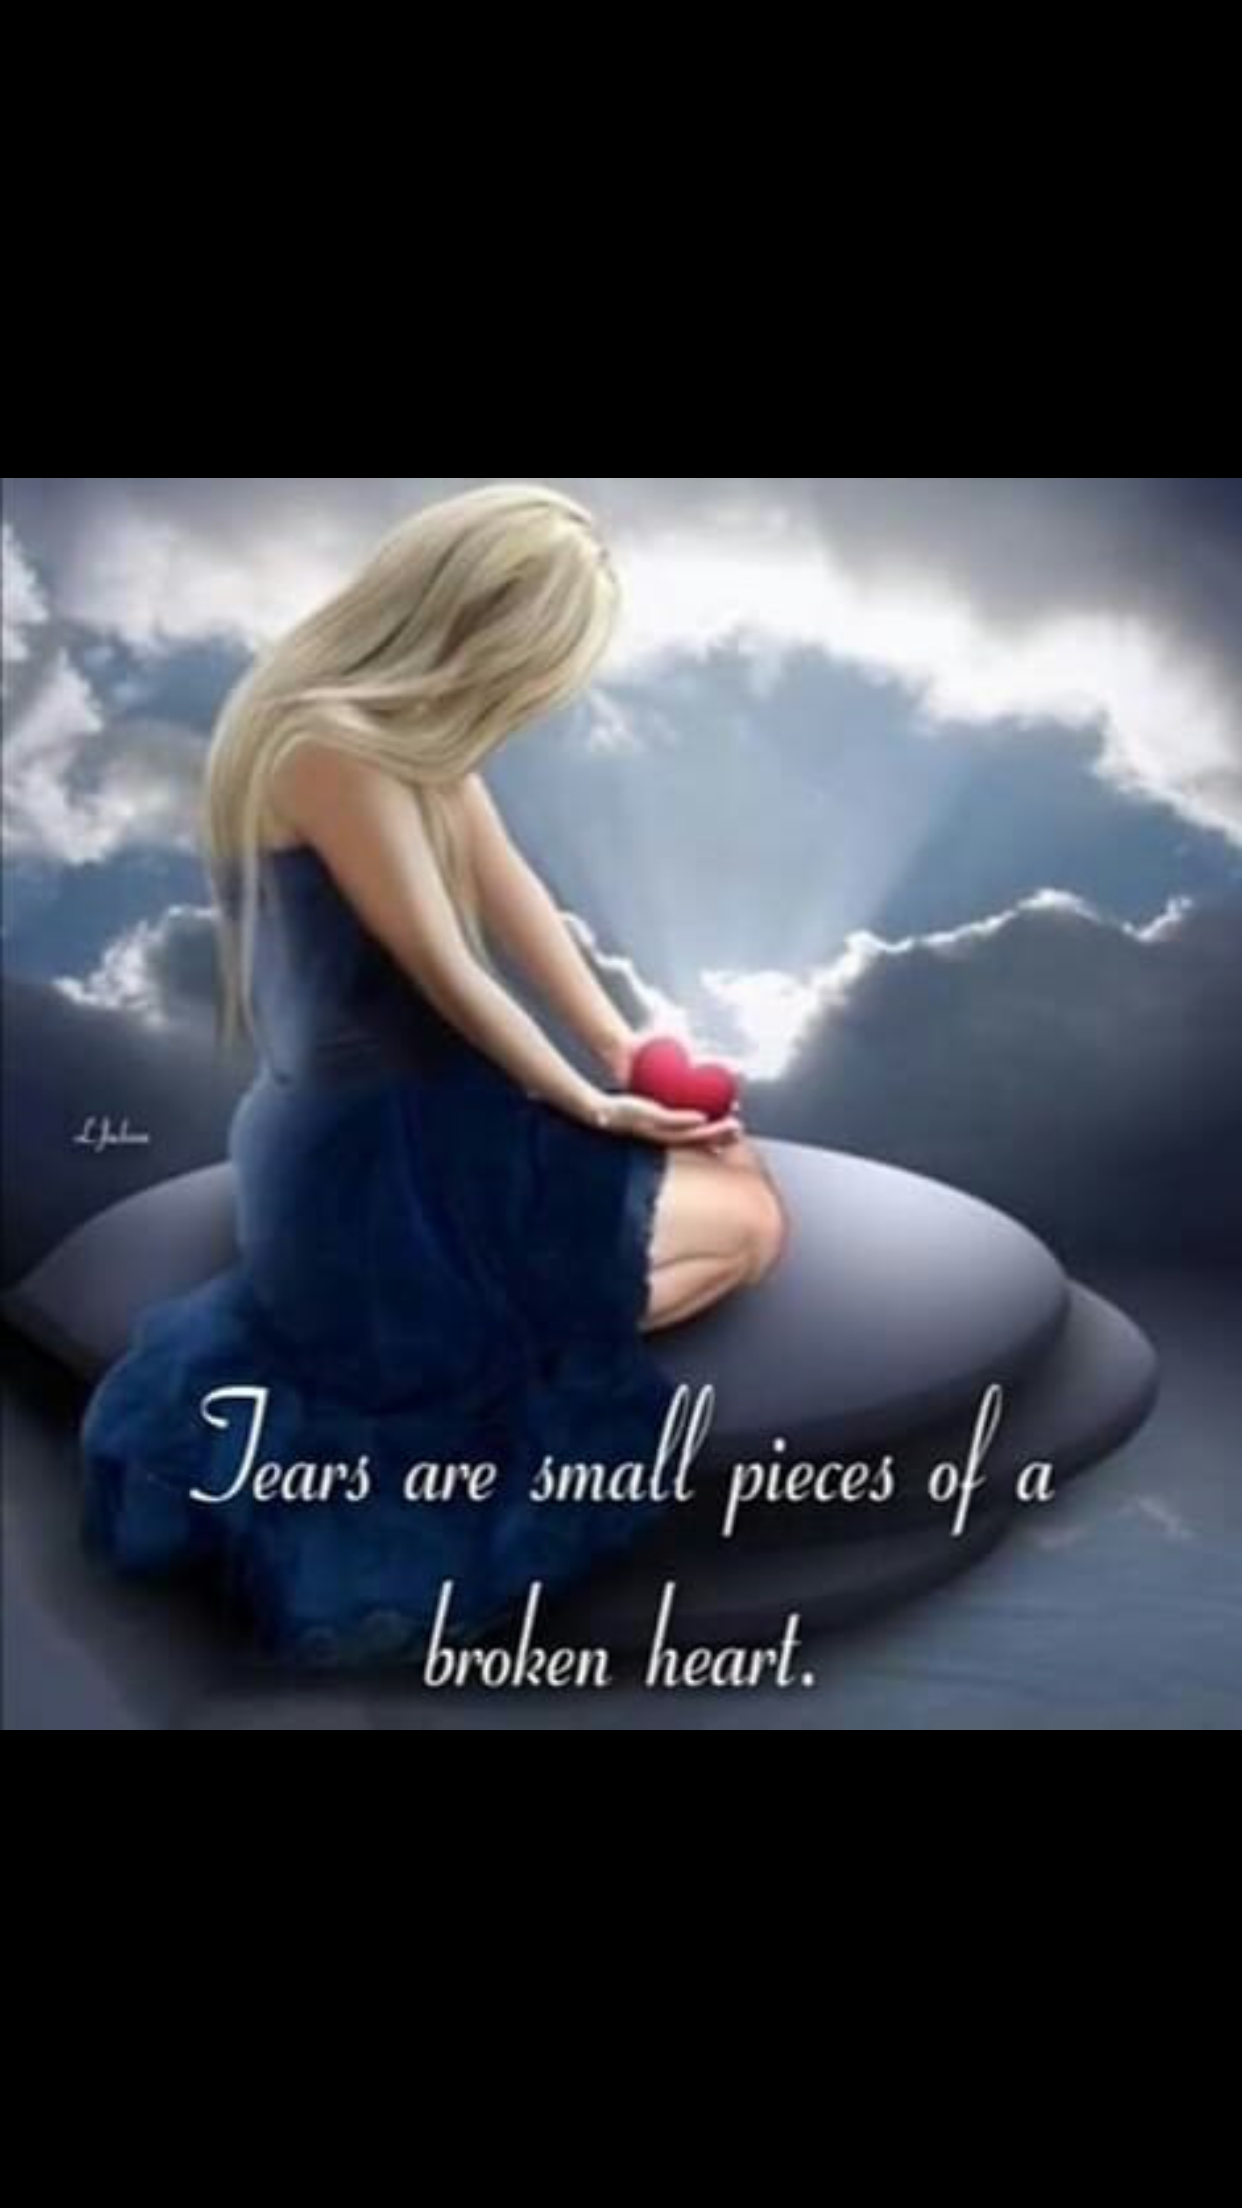 Pin By Gina Devries On Quotes Wise Words Grief